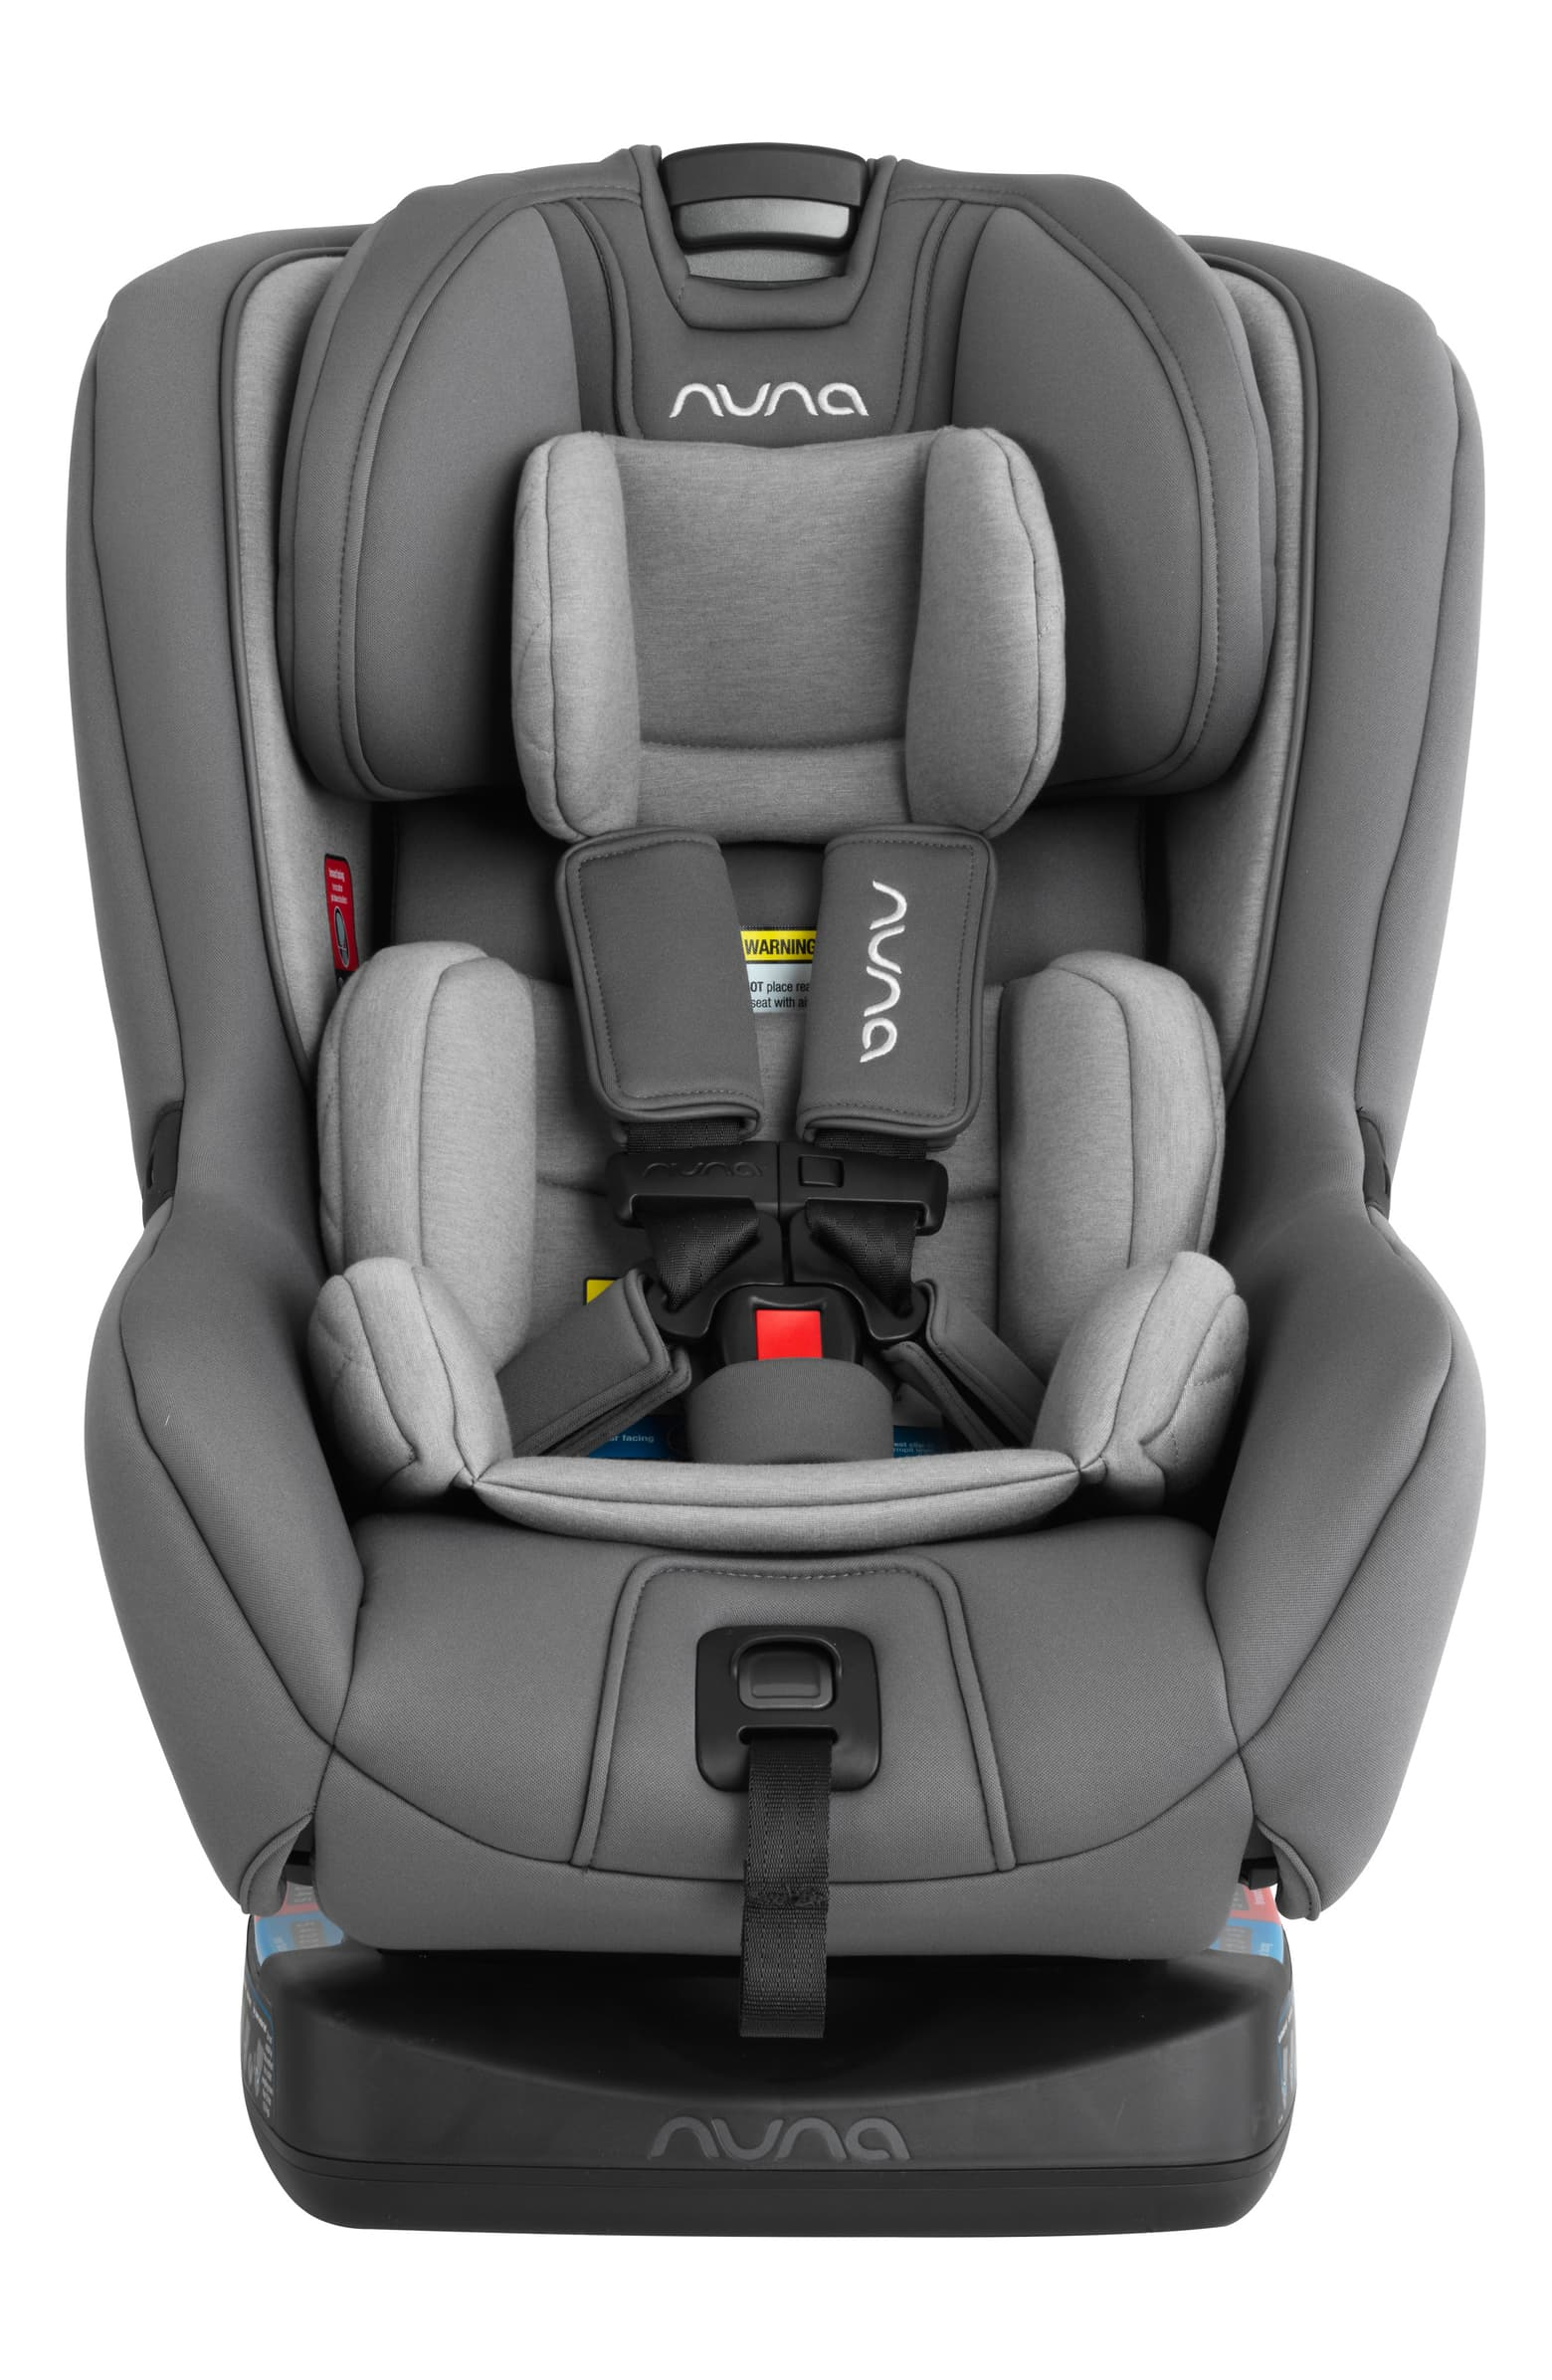 Nuna RAVA Convertible Car Seat - SALE: $374.90, after sale: $499.95